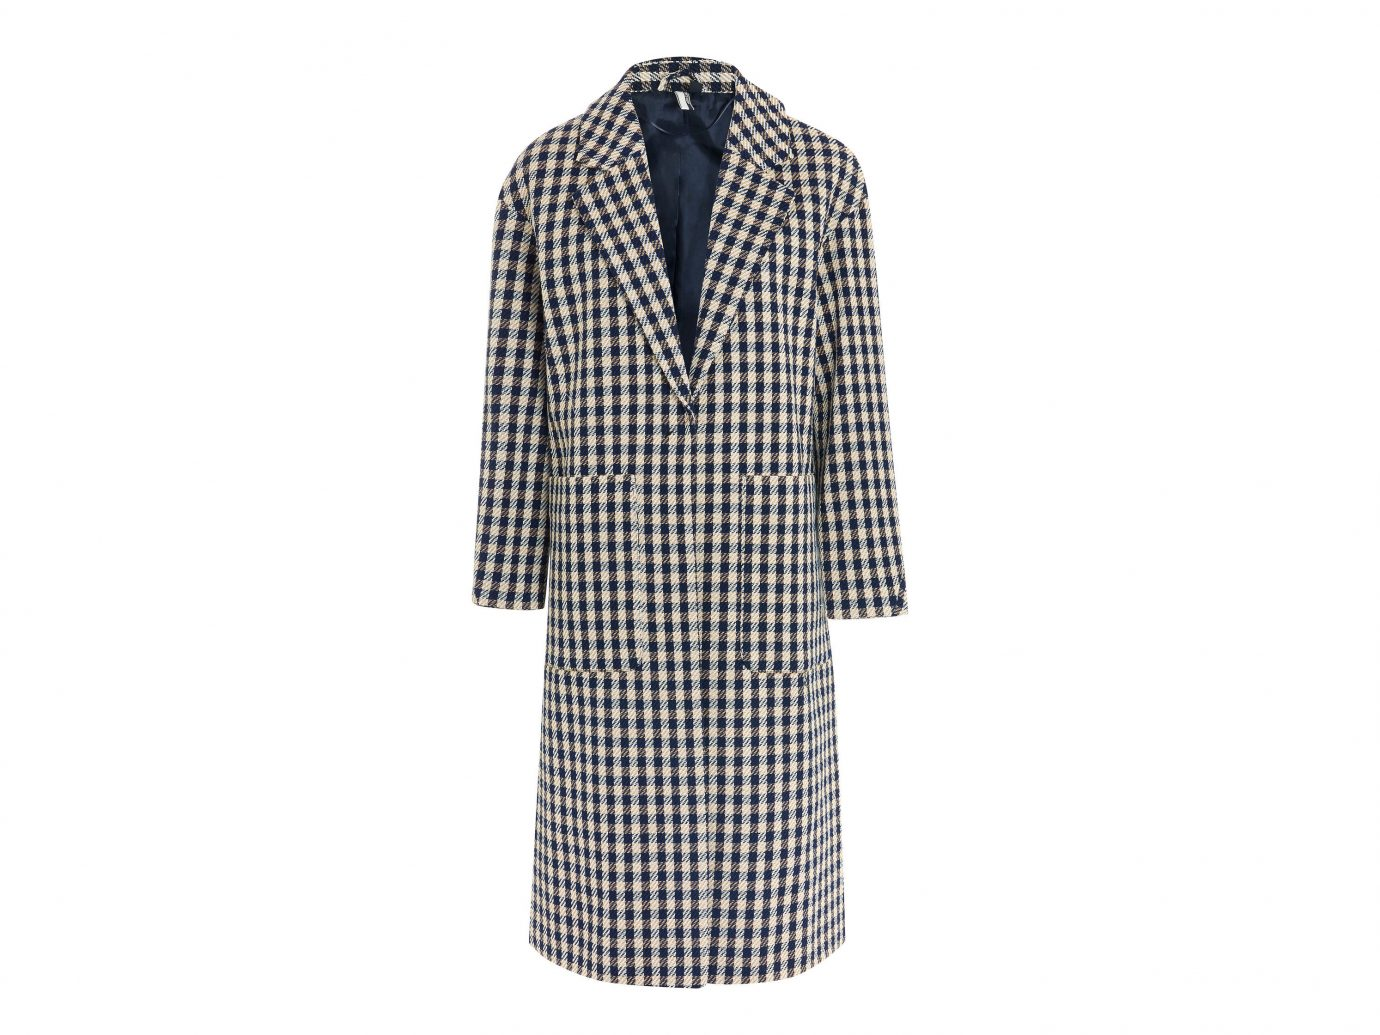 Travel Shop clothing day dress coat outerwear plaid dress pattern tartan sleeve robe nightwear overcoat